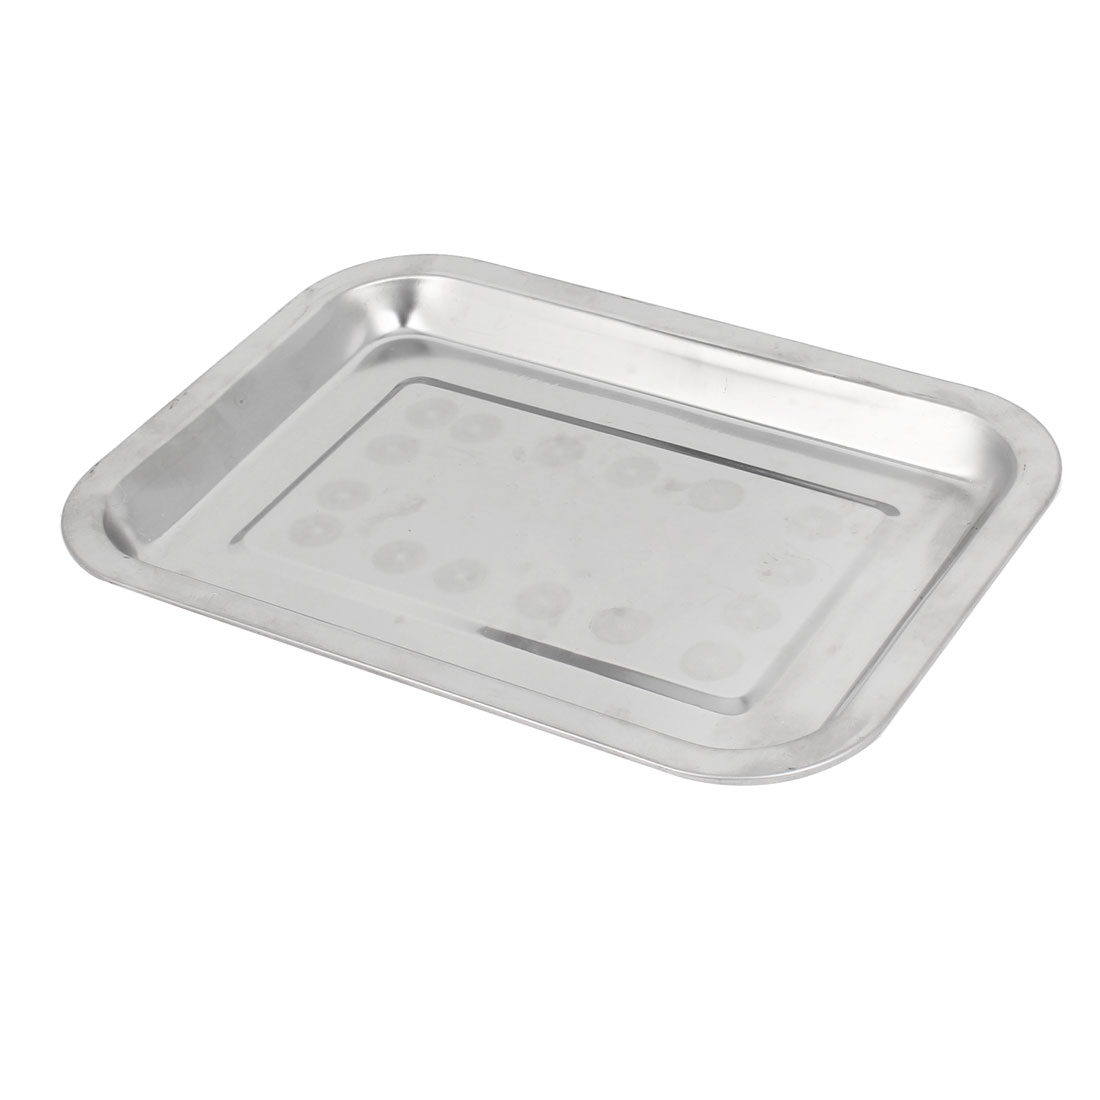 Rectangular Aluminum Alloy Flat Barbecue Plate Baking Pizza Tray